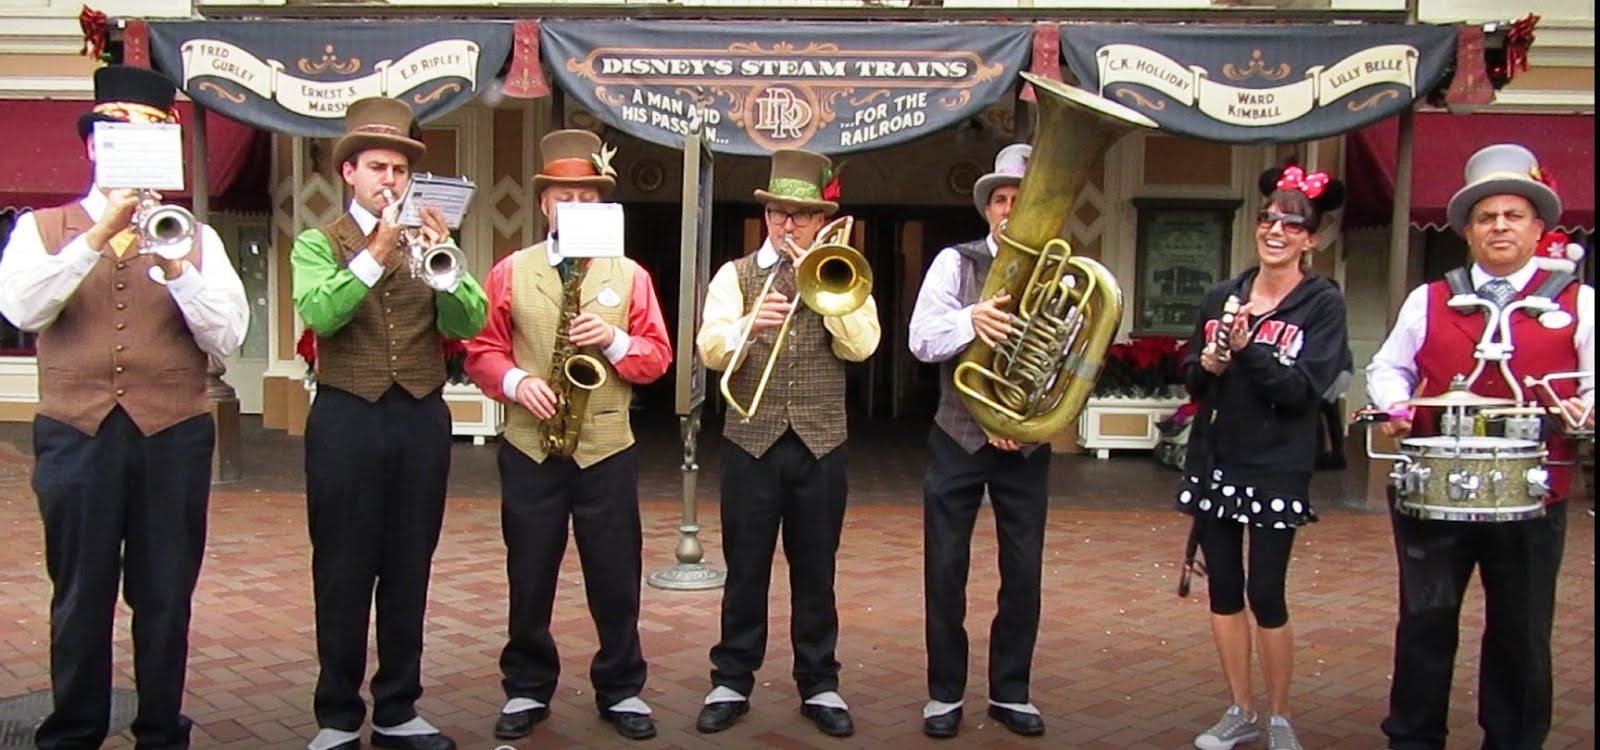 I'm with the Disneyland Band!